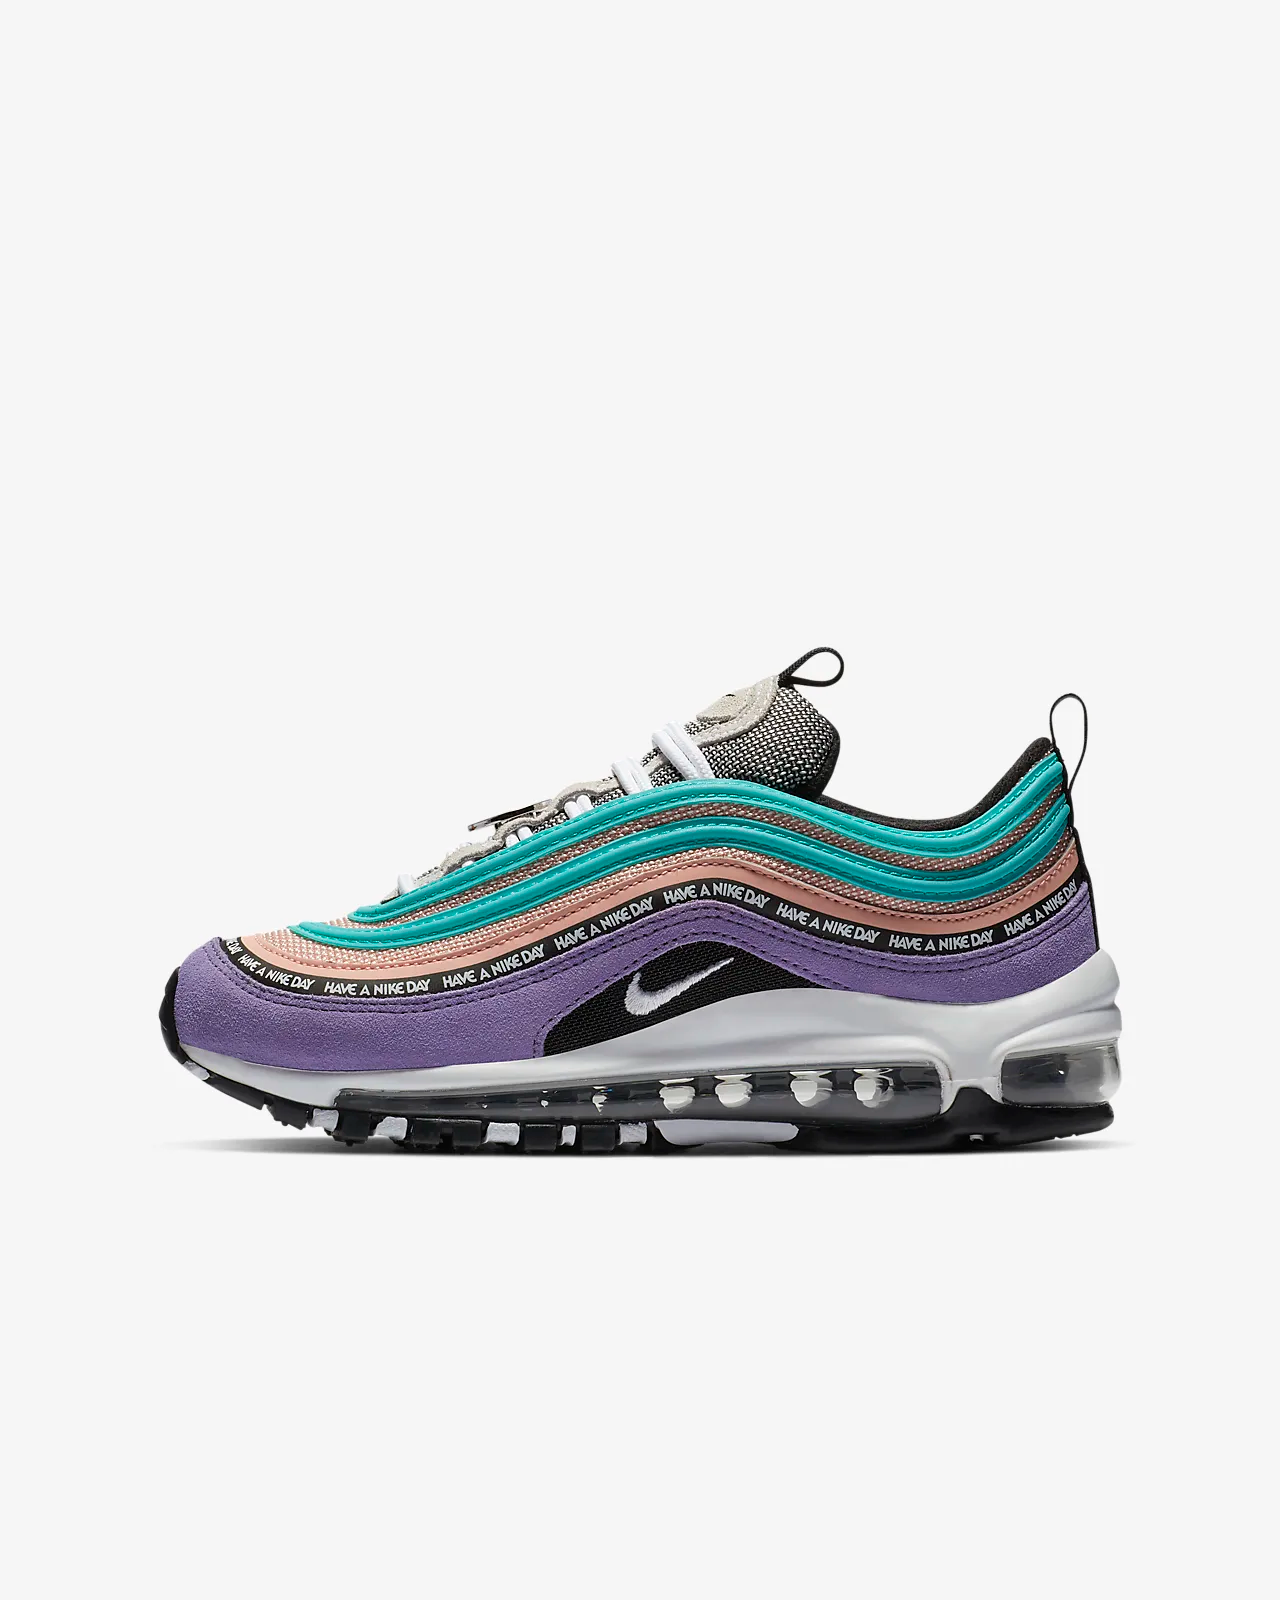 e461fdccf4 Now Available: GS Nike Air Max 97